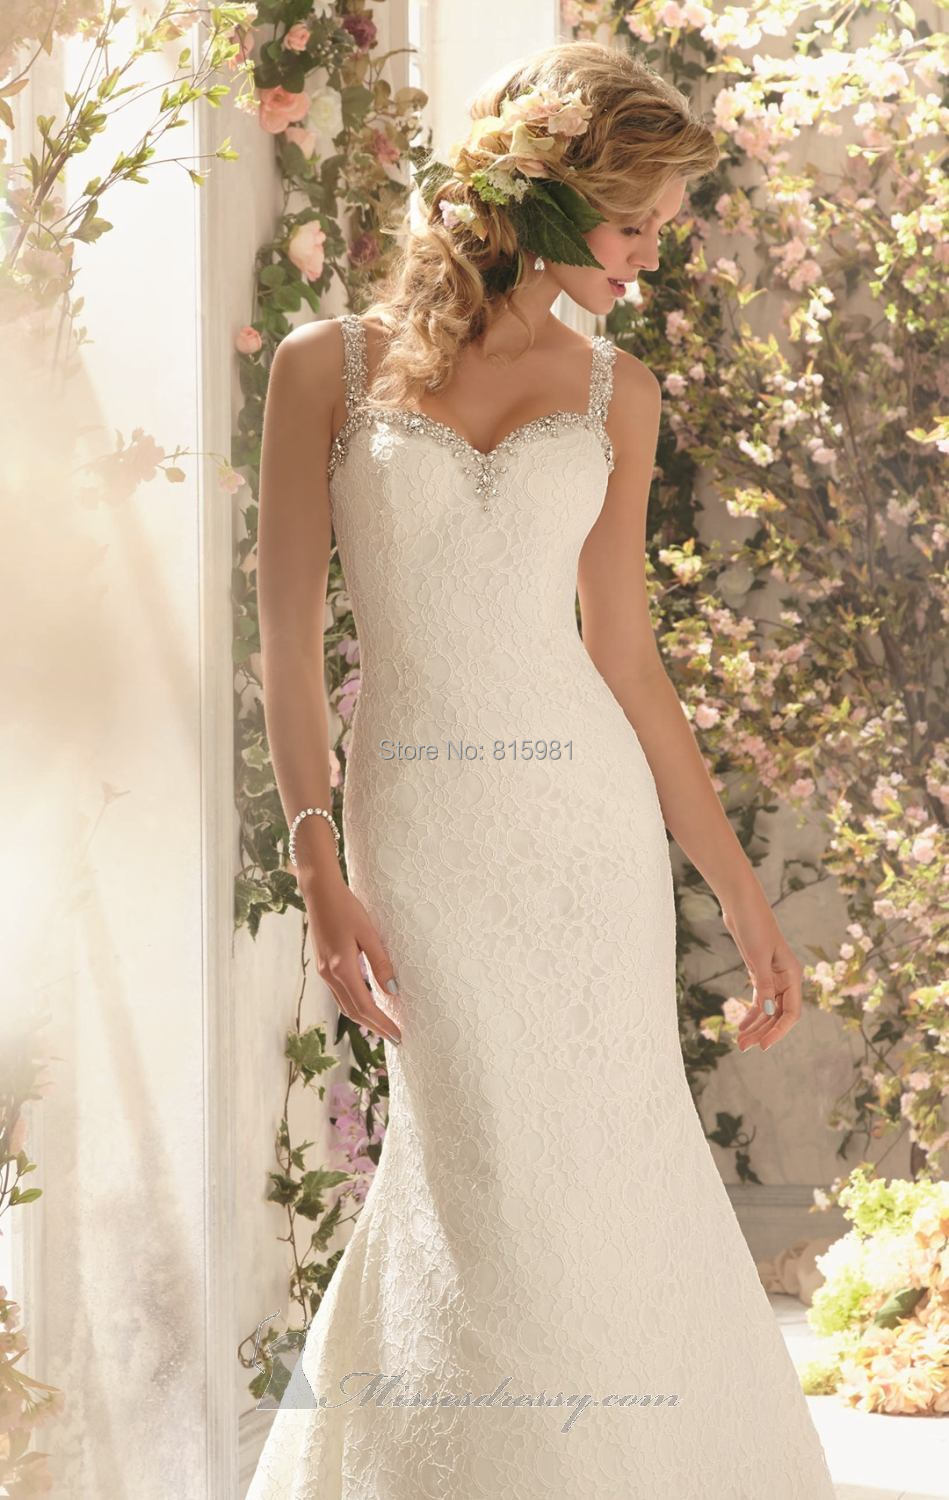 Ivory Straps Floor Length Mermaid Lace Wedding Dress Bridal Gown ...